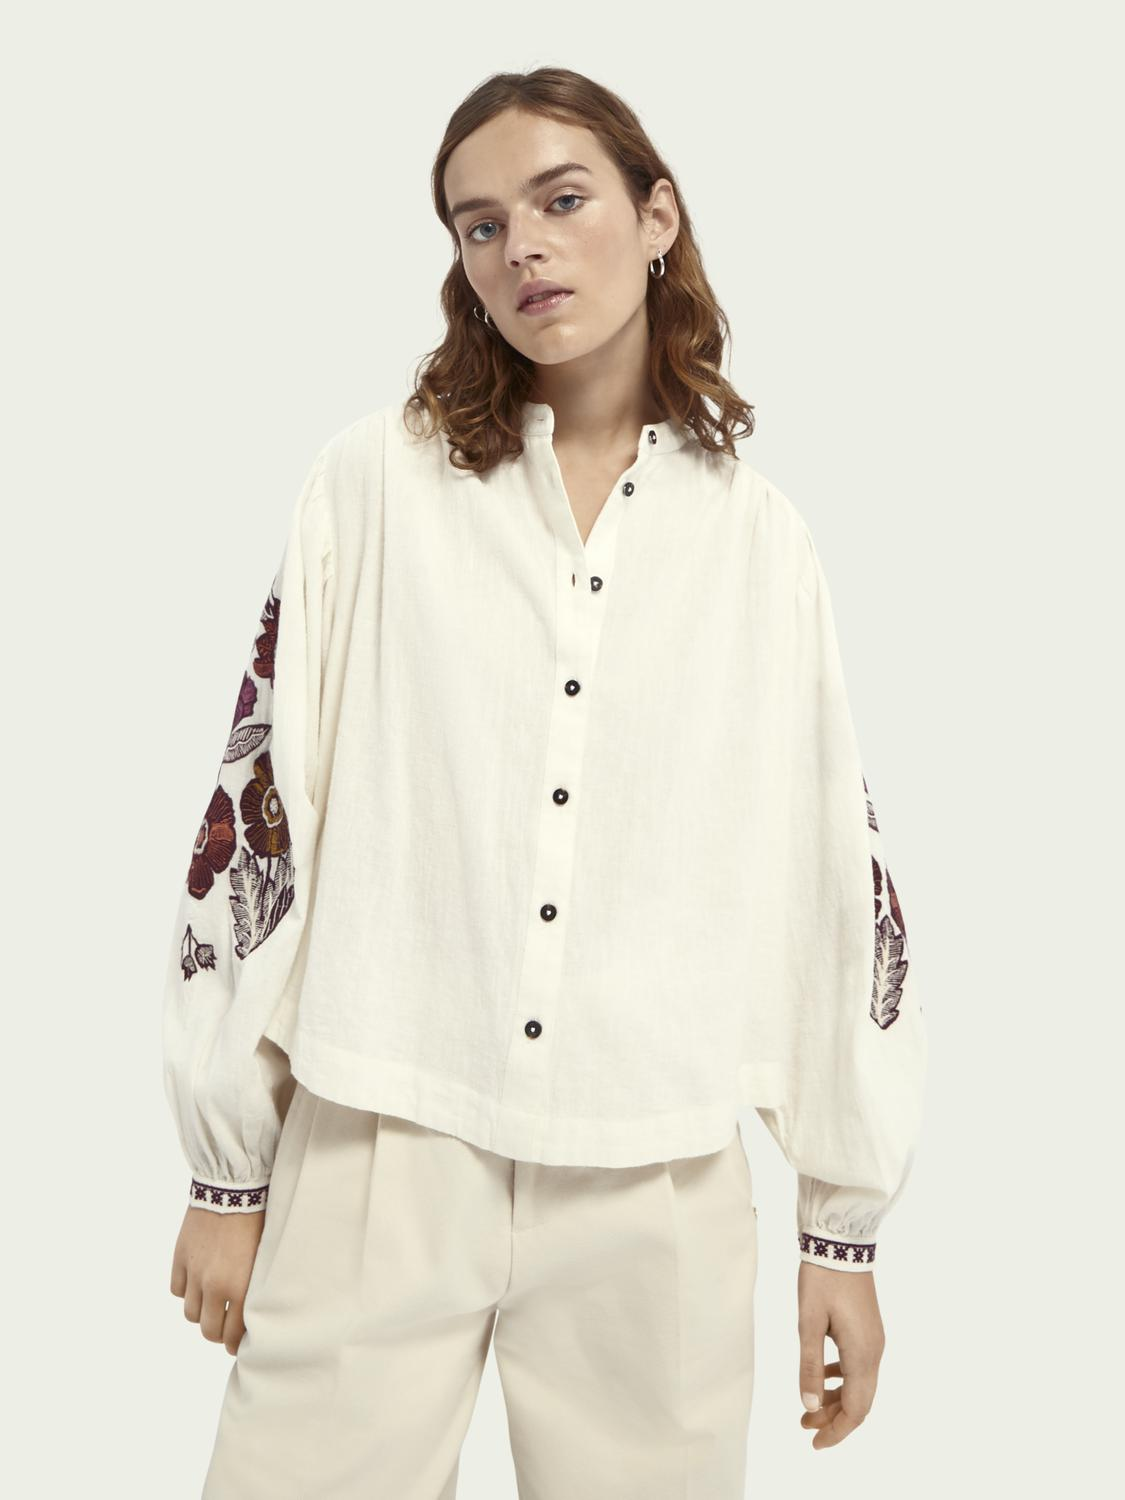 Voluminous sleeved embroidered top